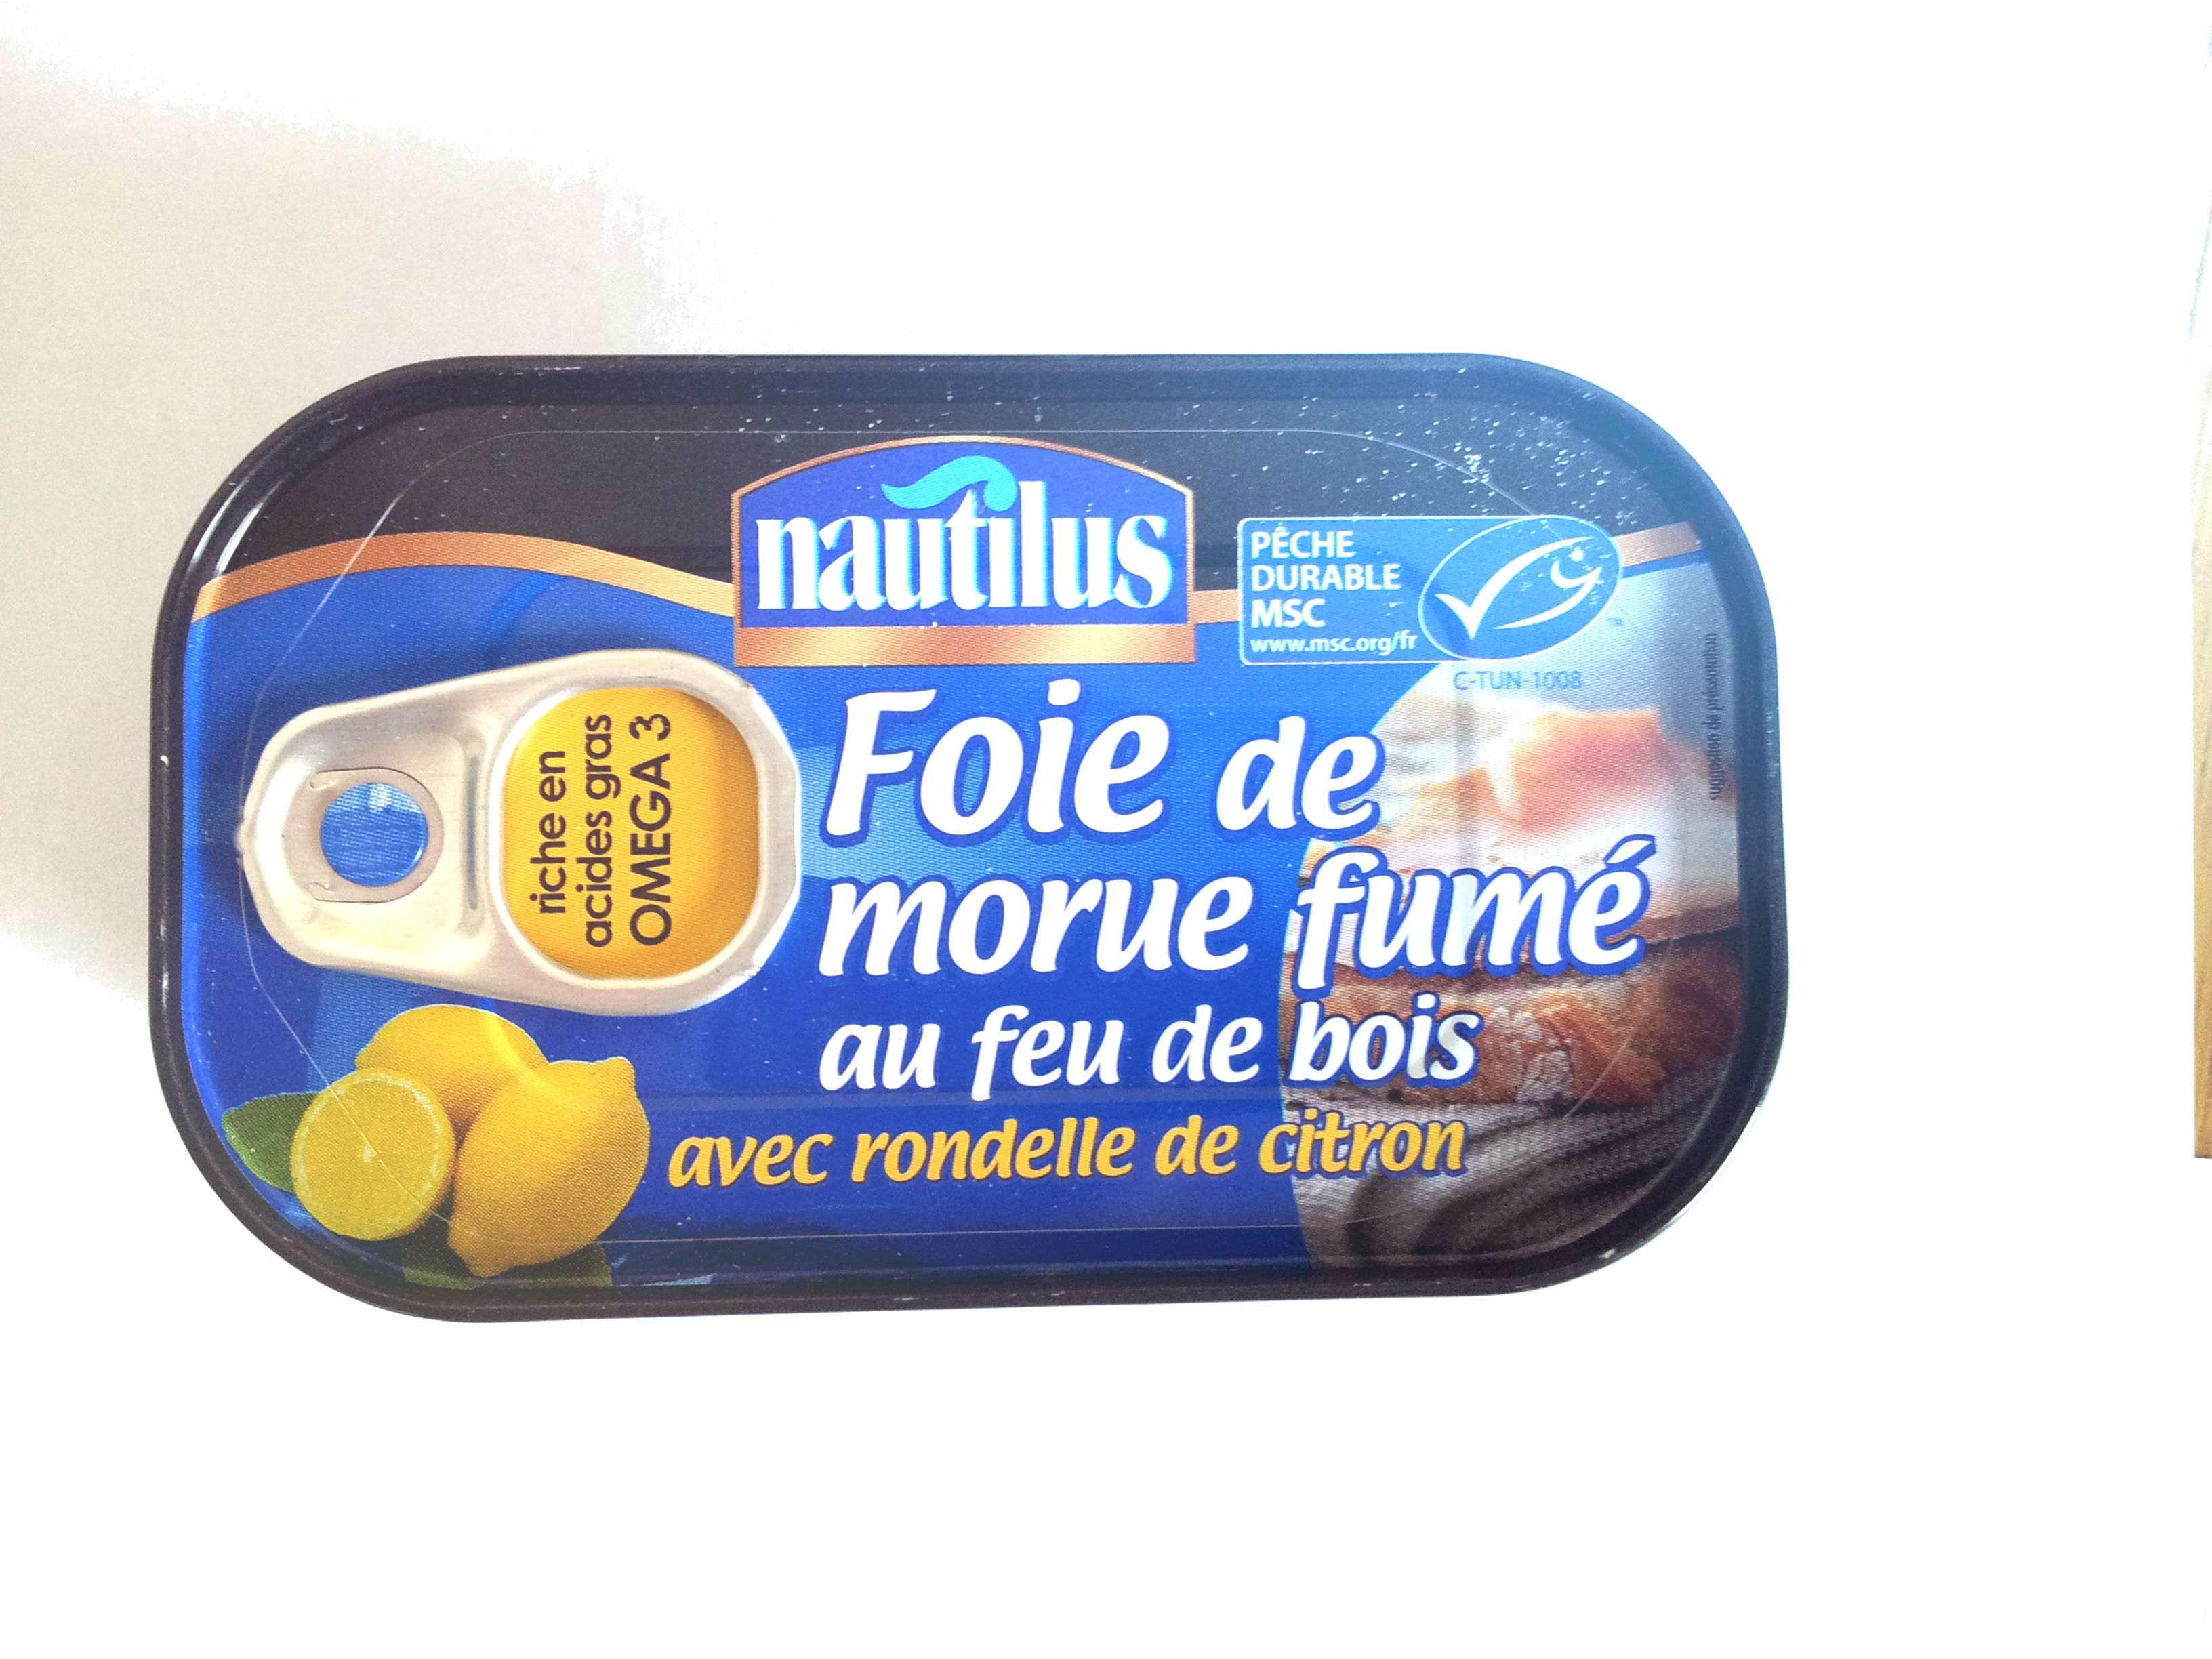 foie de morue fum au feu de bois avec rondelle de citron nautilus 120 g. Black Bedroom Furniture Sets. Home Design Ideas